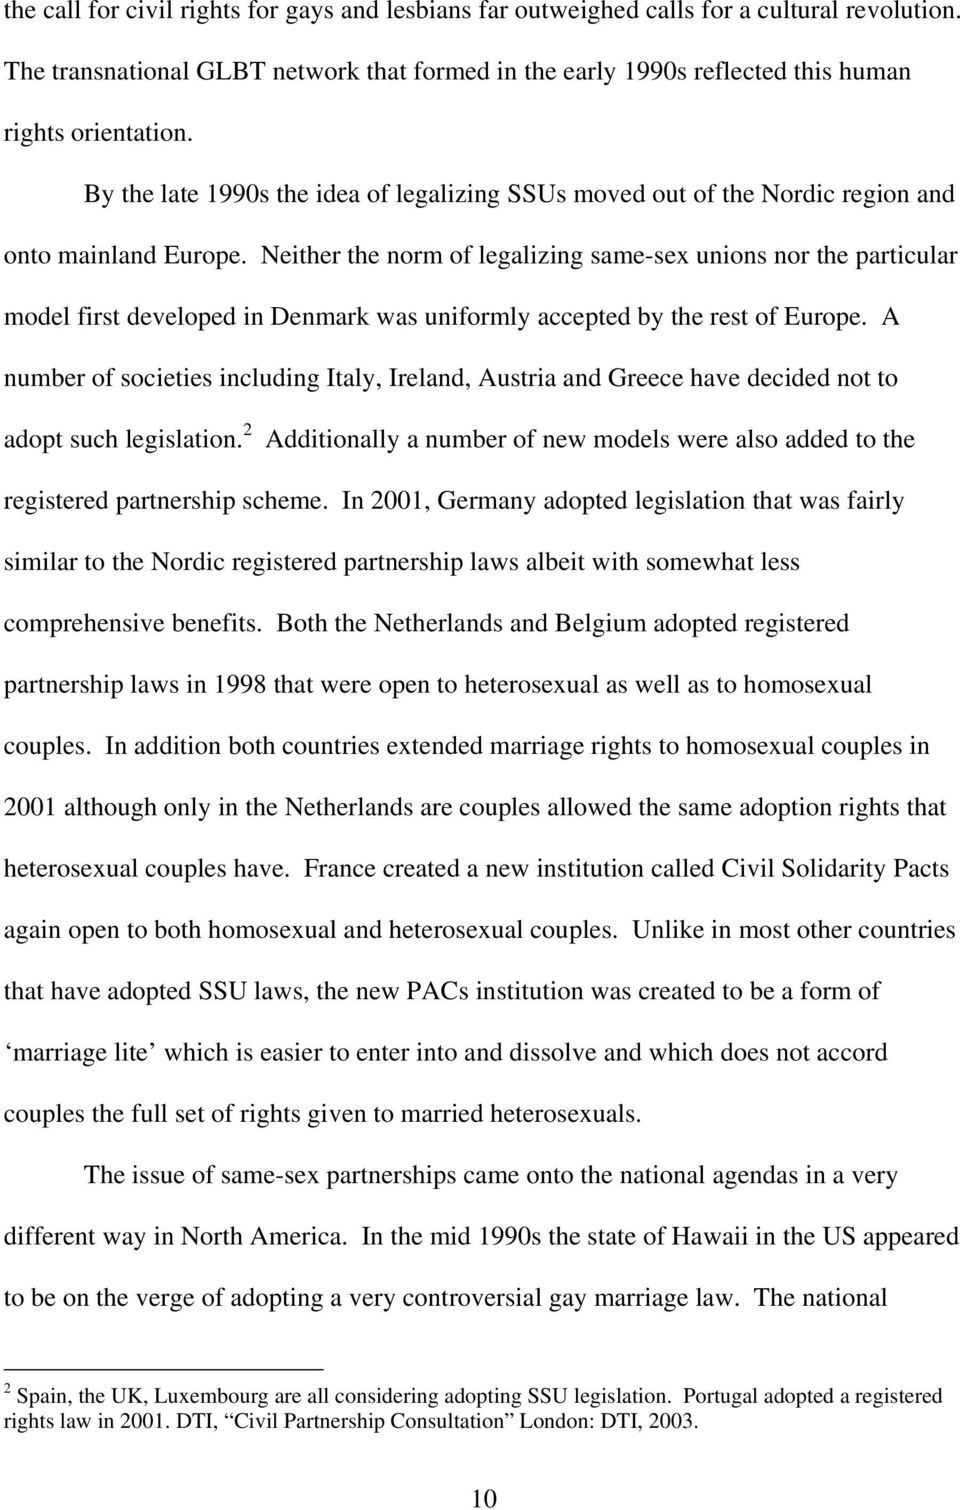 Neither the norm of legalizing same-sex unions nor the particular model first developed in Denmark was uniformly accepted by the rest of Europe.